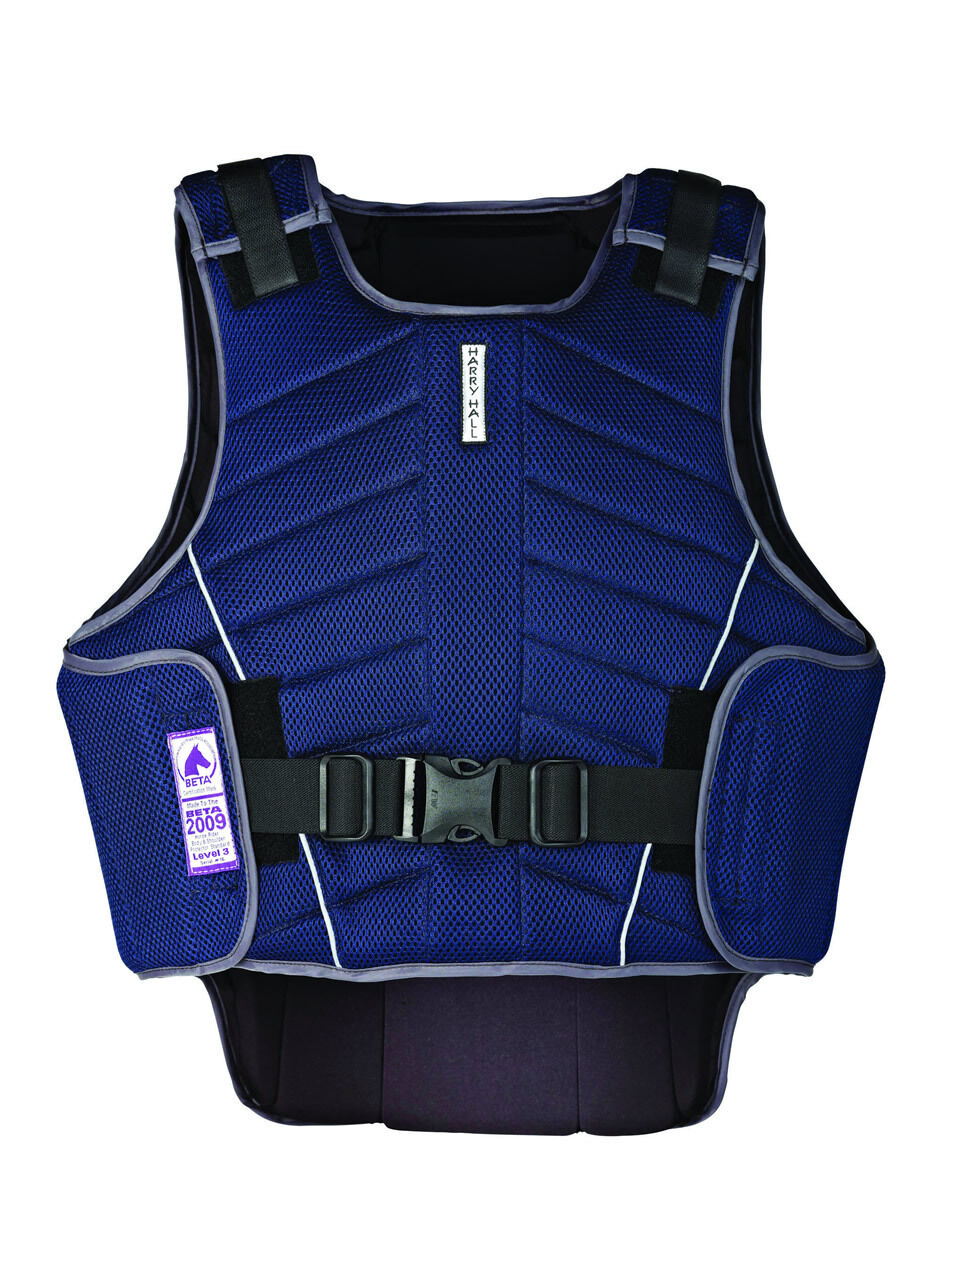 Harry Hall zeus beta level 3 adult's protector horse riding body protector adult's 952332